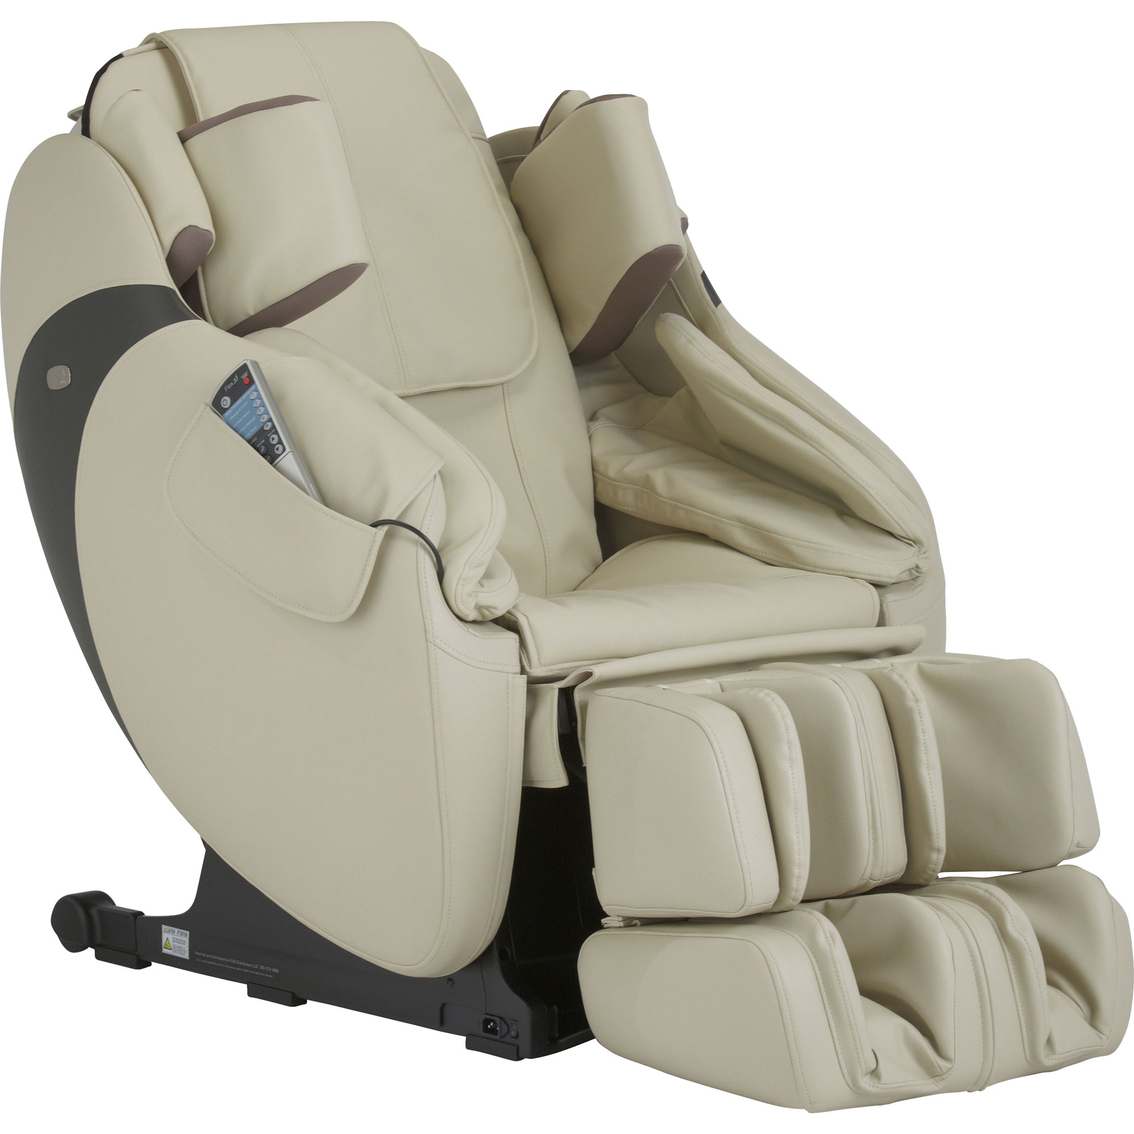 Inada Dreamwave Massage Chair Inada Flex 3s Massage Chair Cream Chairs And Recliners